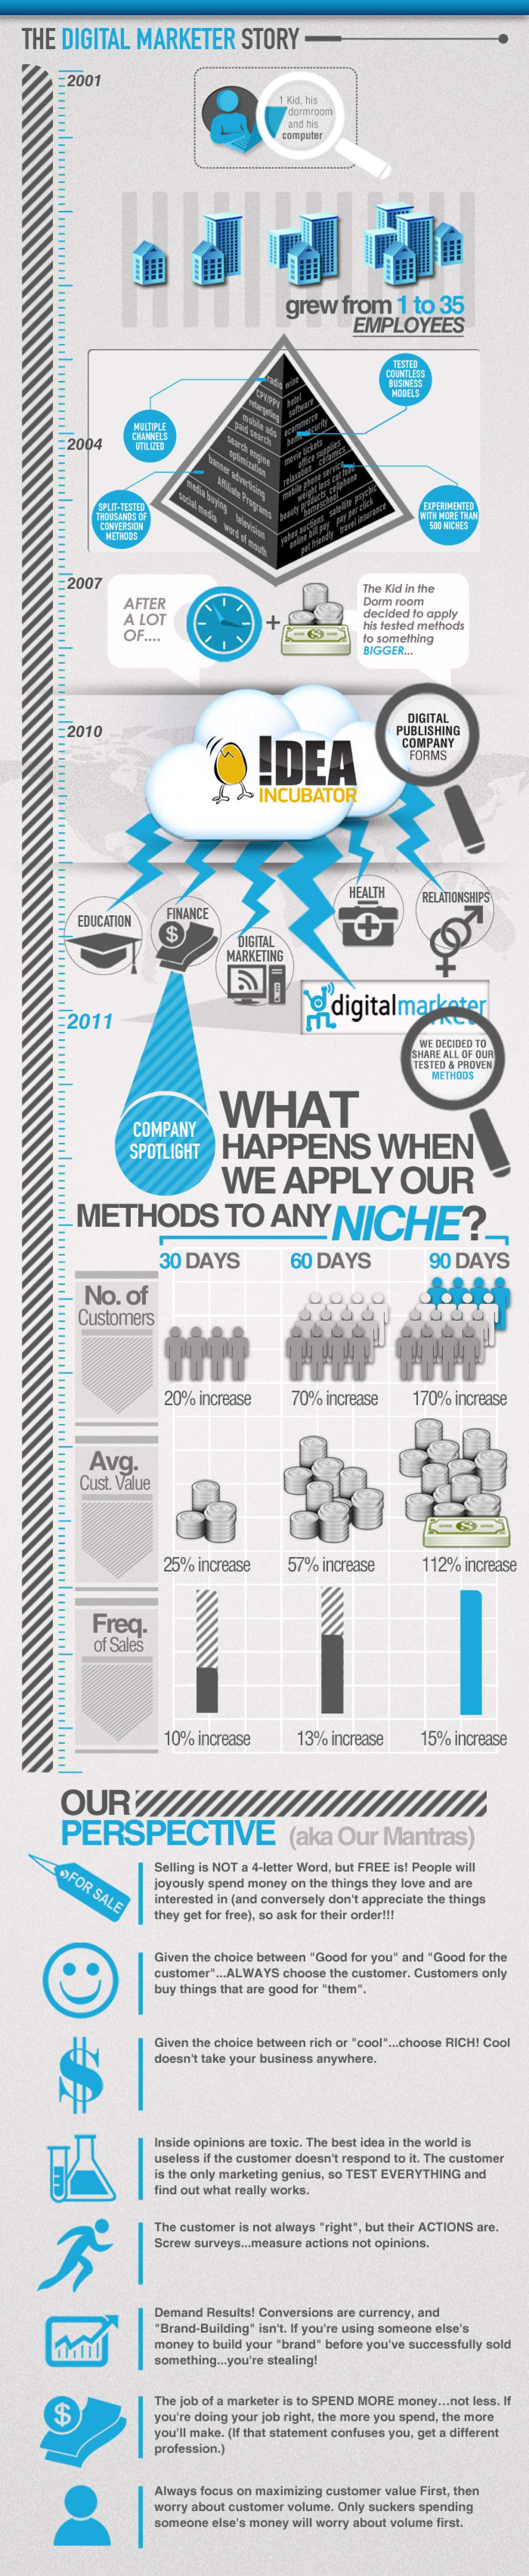 The Digital Marketer Story Infographic